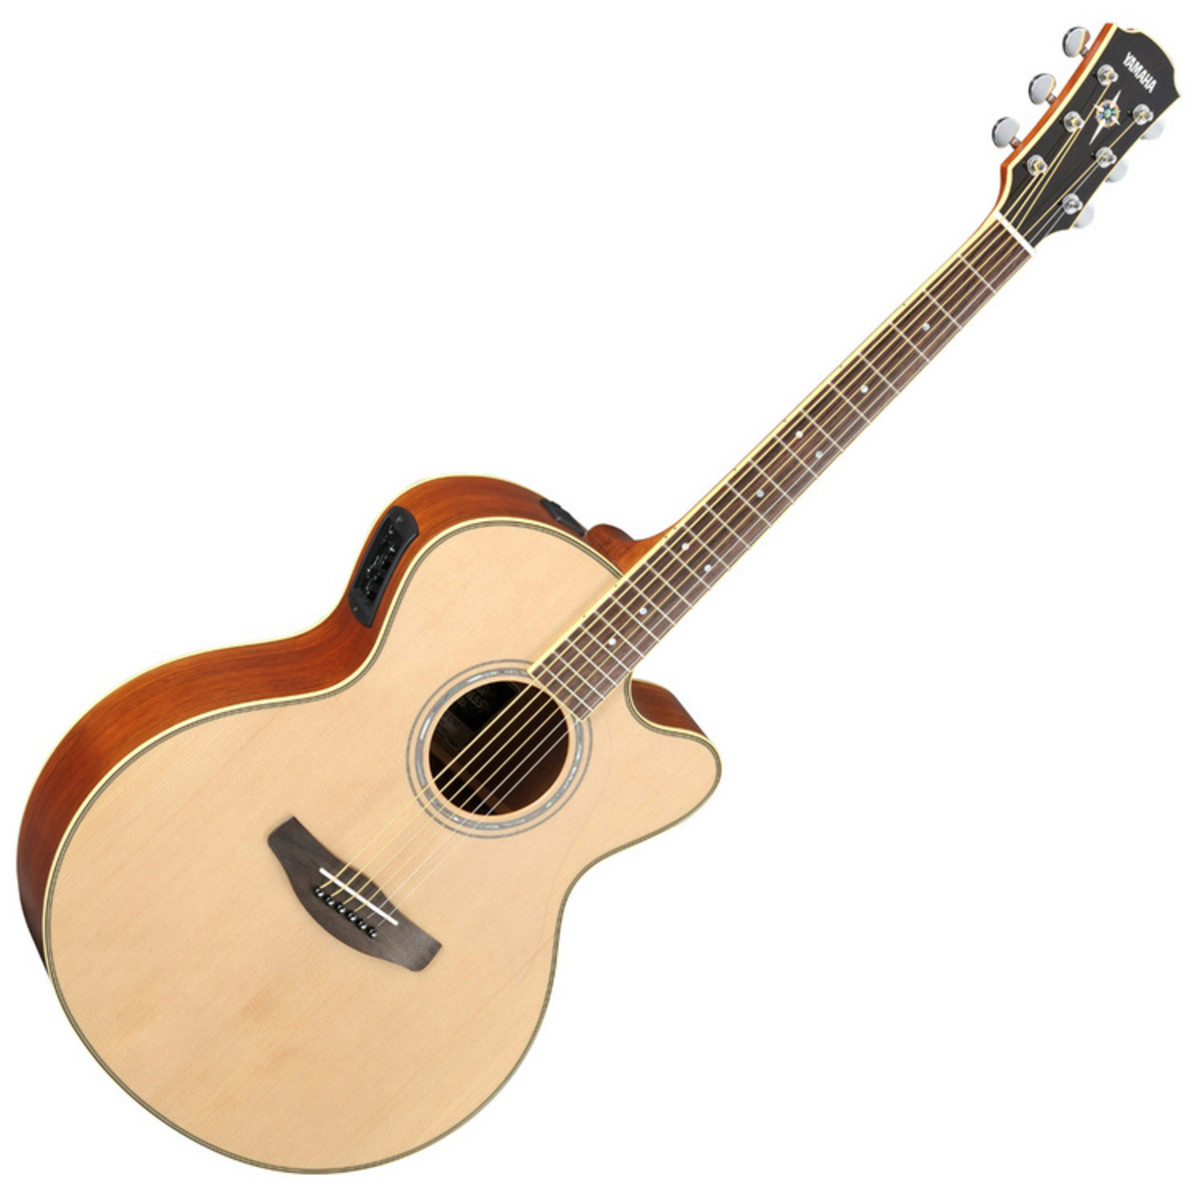 Disc yamaha cpx700ii electro ac stico guitarra natural en for Yamaha phone number